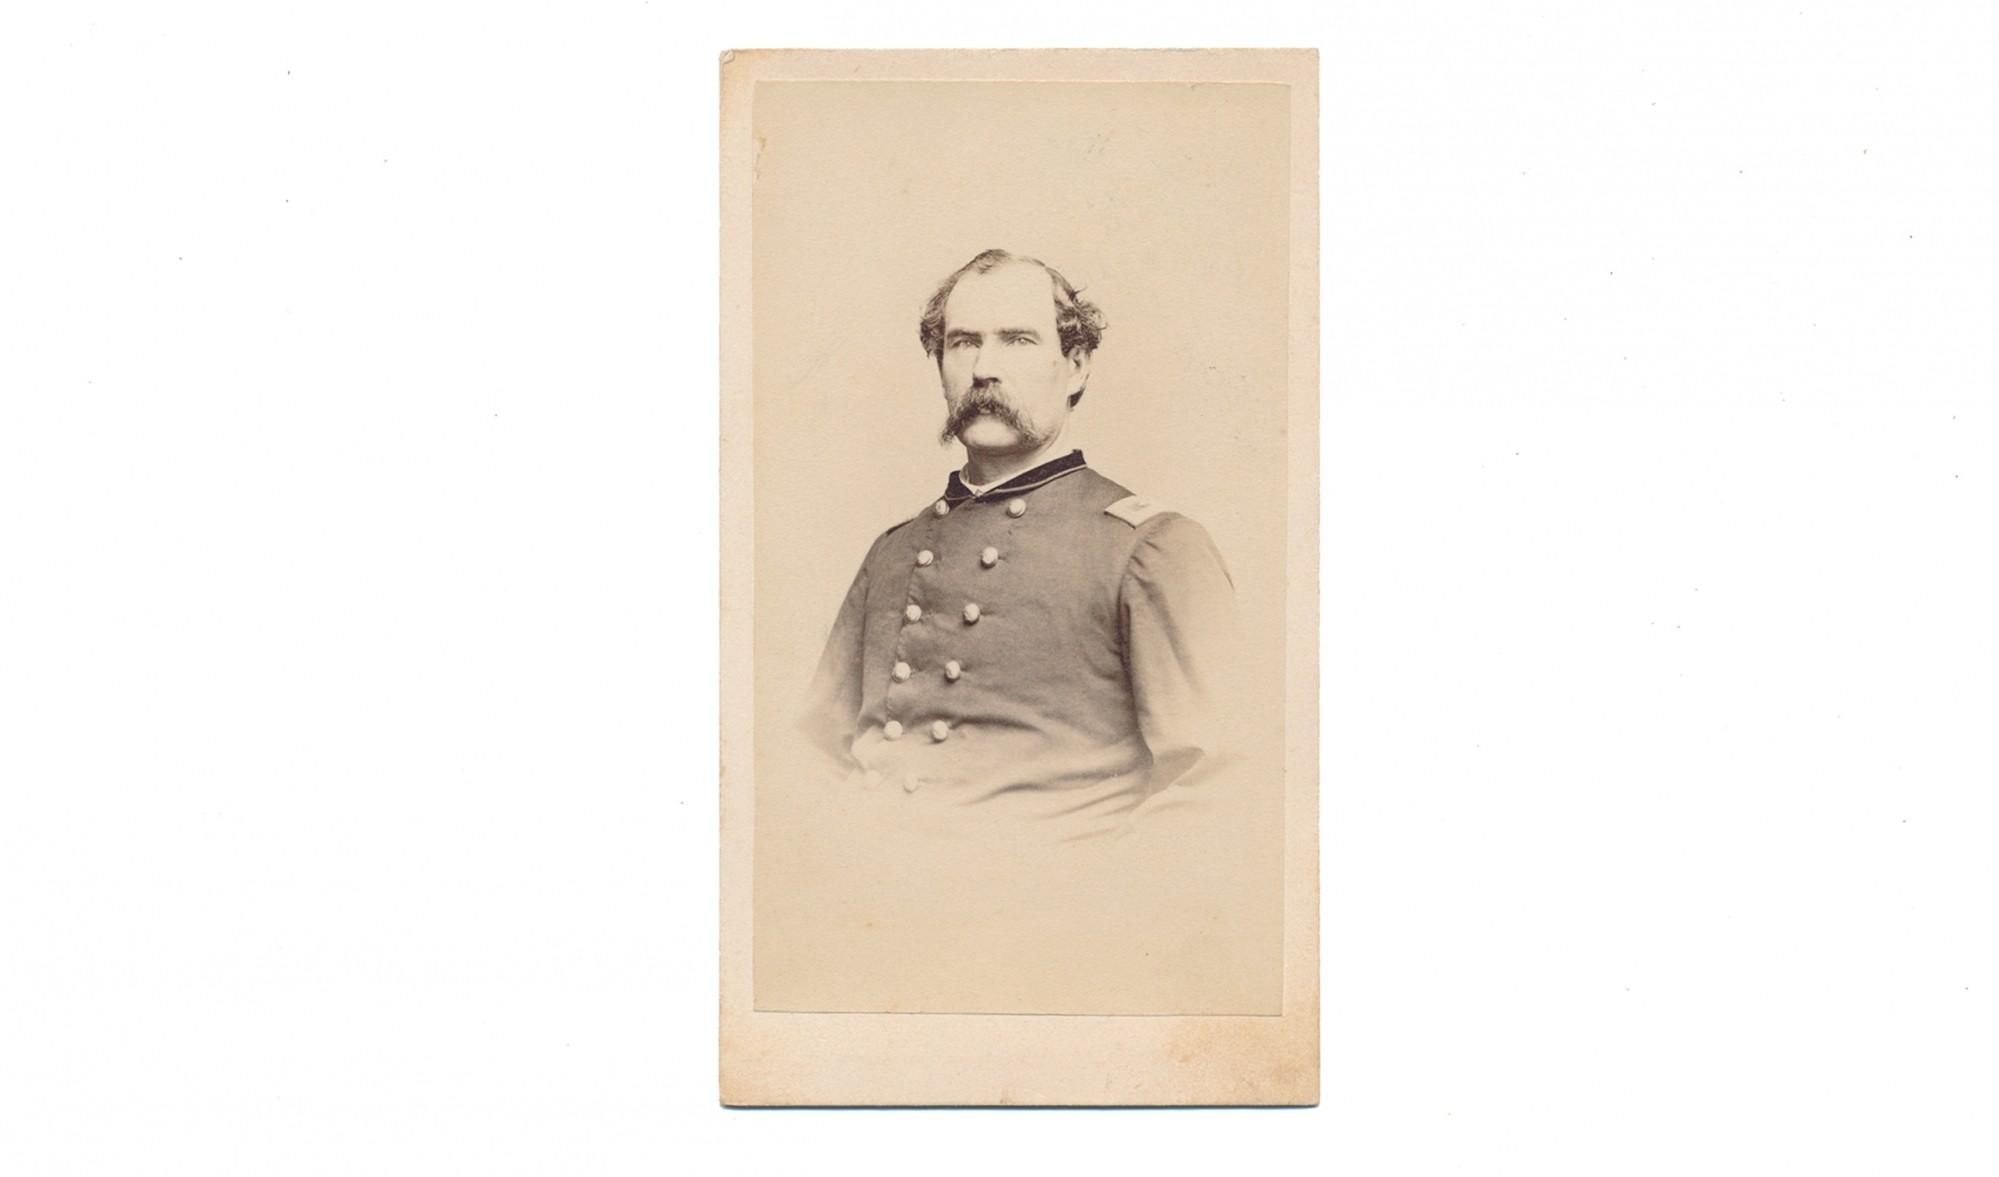 CDV OF ALBERT S. FOLLANSBEE, 6TH MASSACHUSETTS INFANTRY